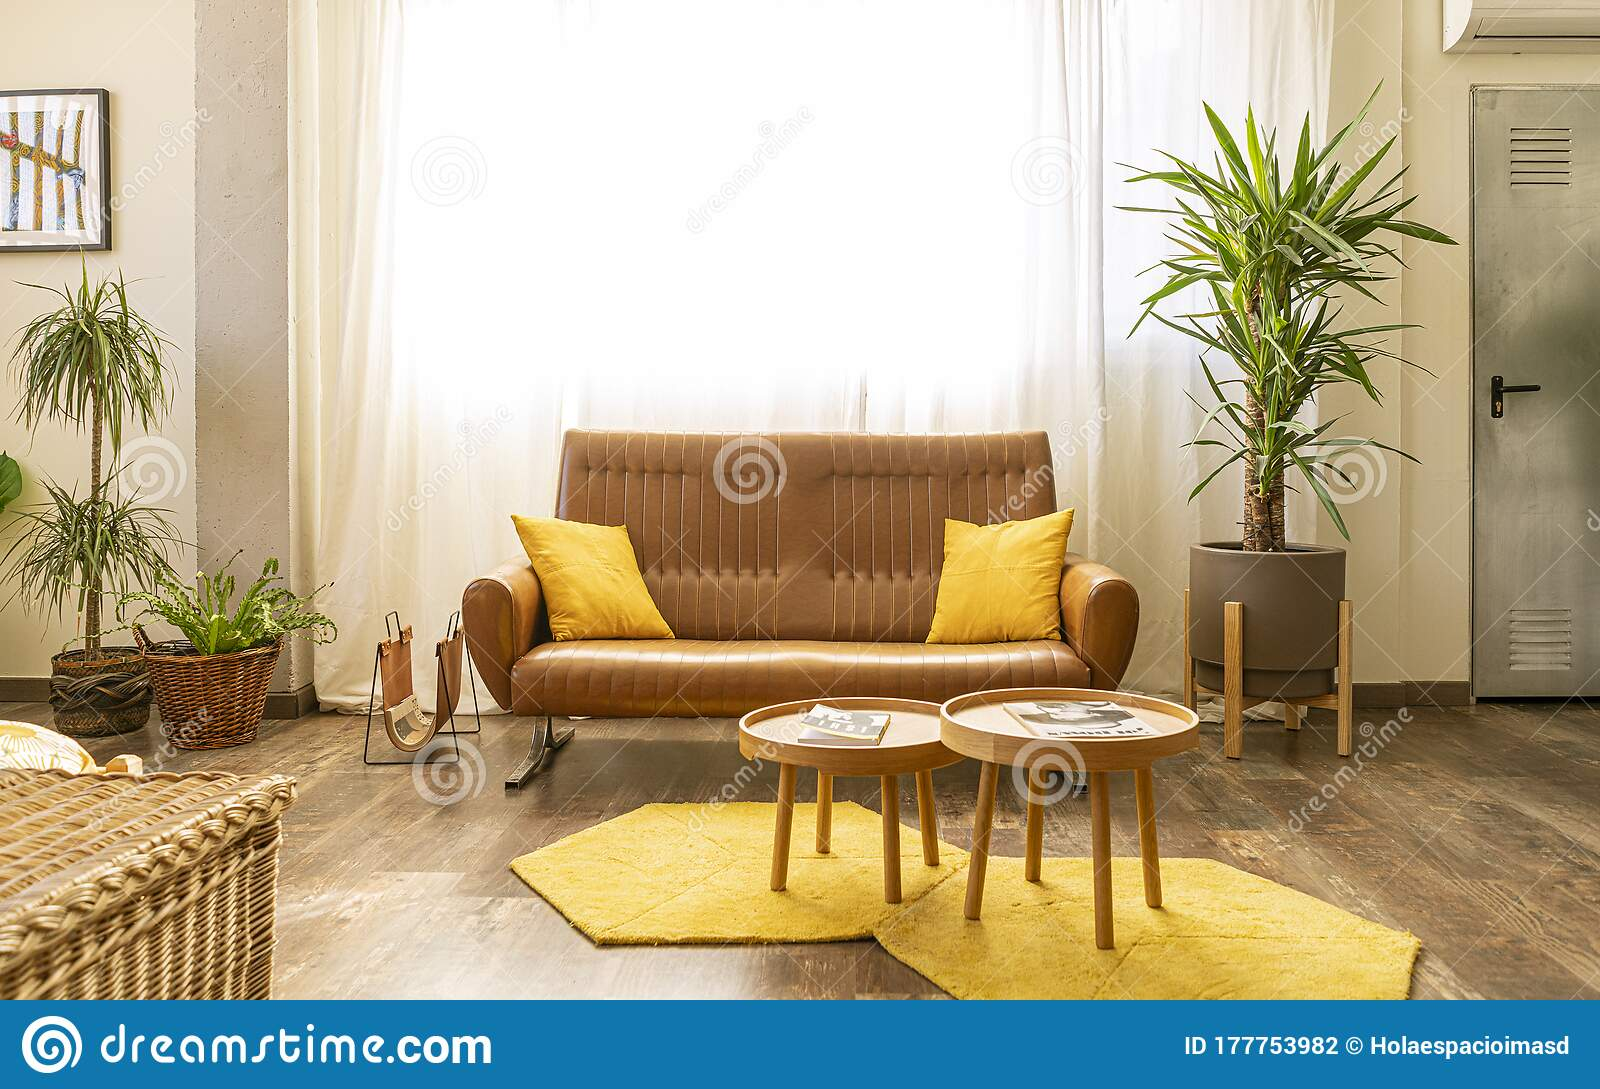 Interior Home Decoration Corner In A Living Room Bedroom With Brown Sofa Two Wooden Tables Stock Photo Image Of Indoors Decor 177753982